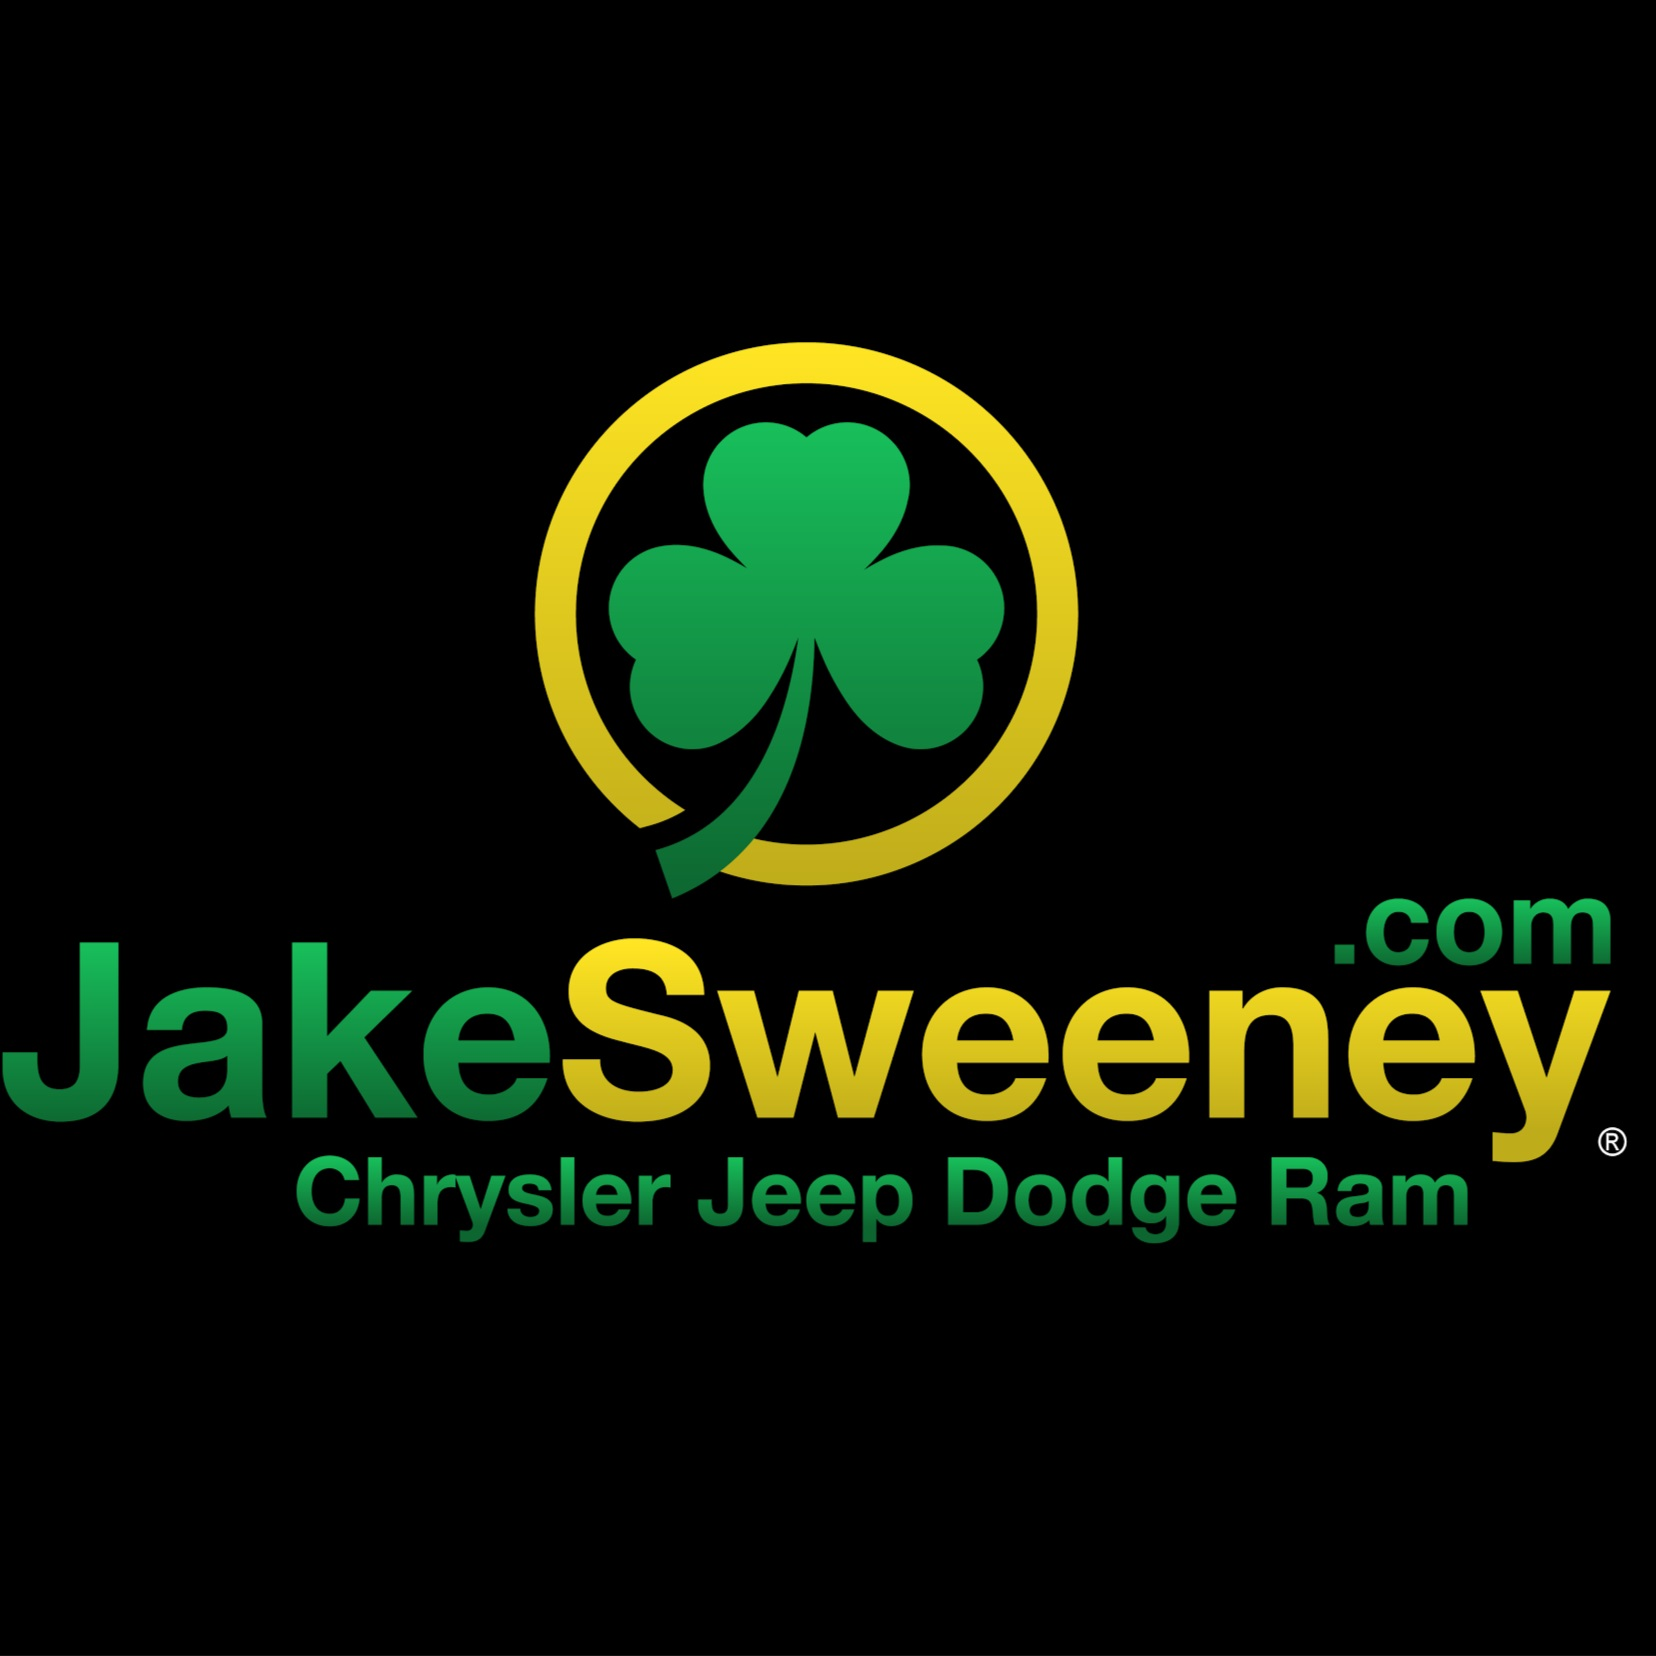 Jake Sweeney Used Cars >> Cincinnati Oh Jake Sweeney Chrysler Jeep Dodge Ram | Autos Post